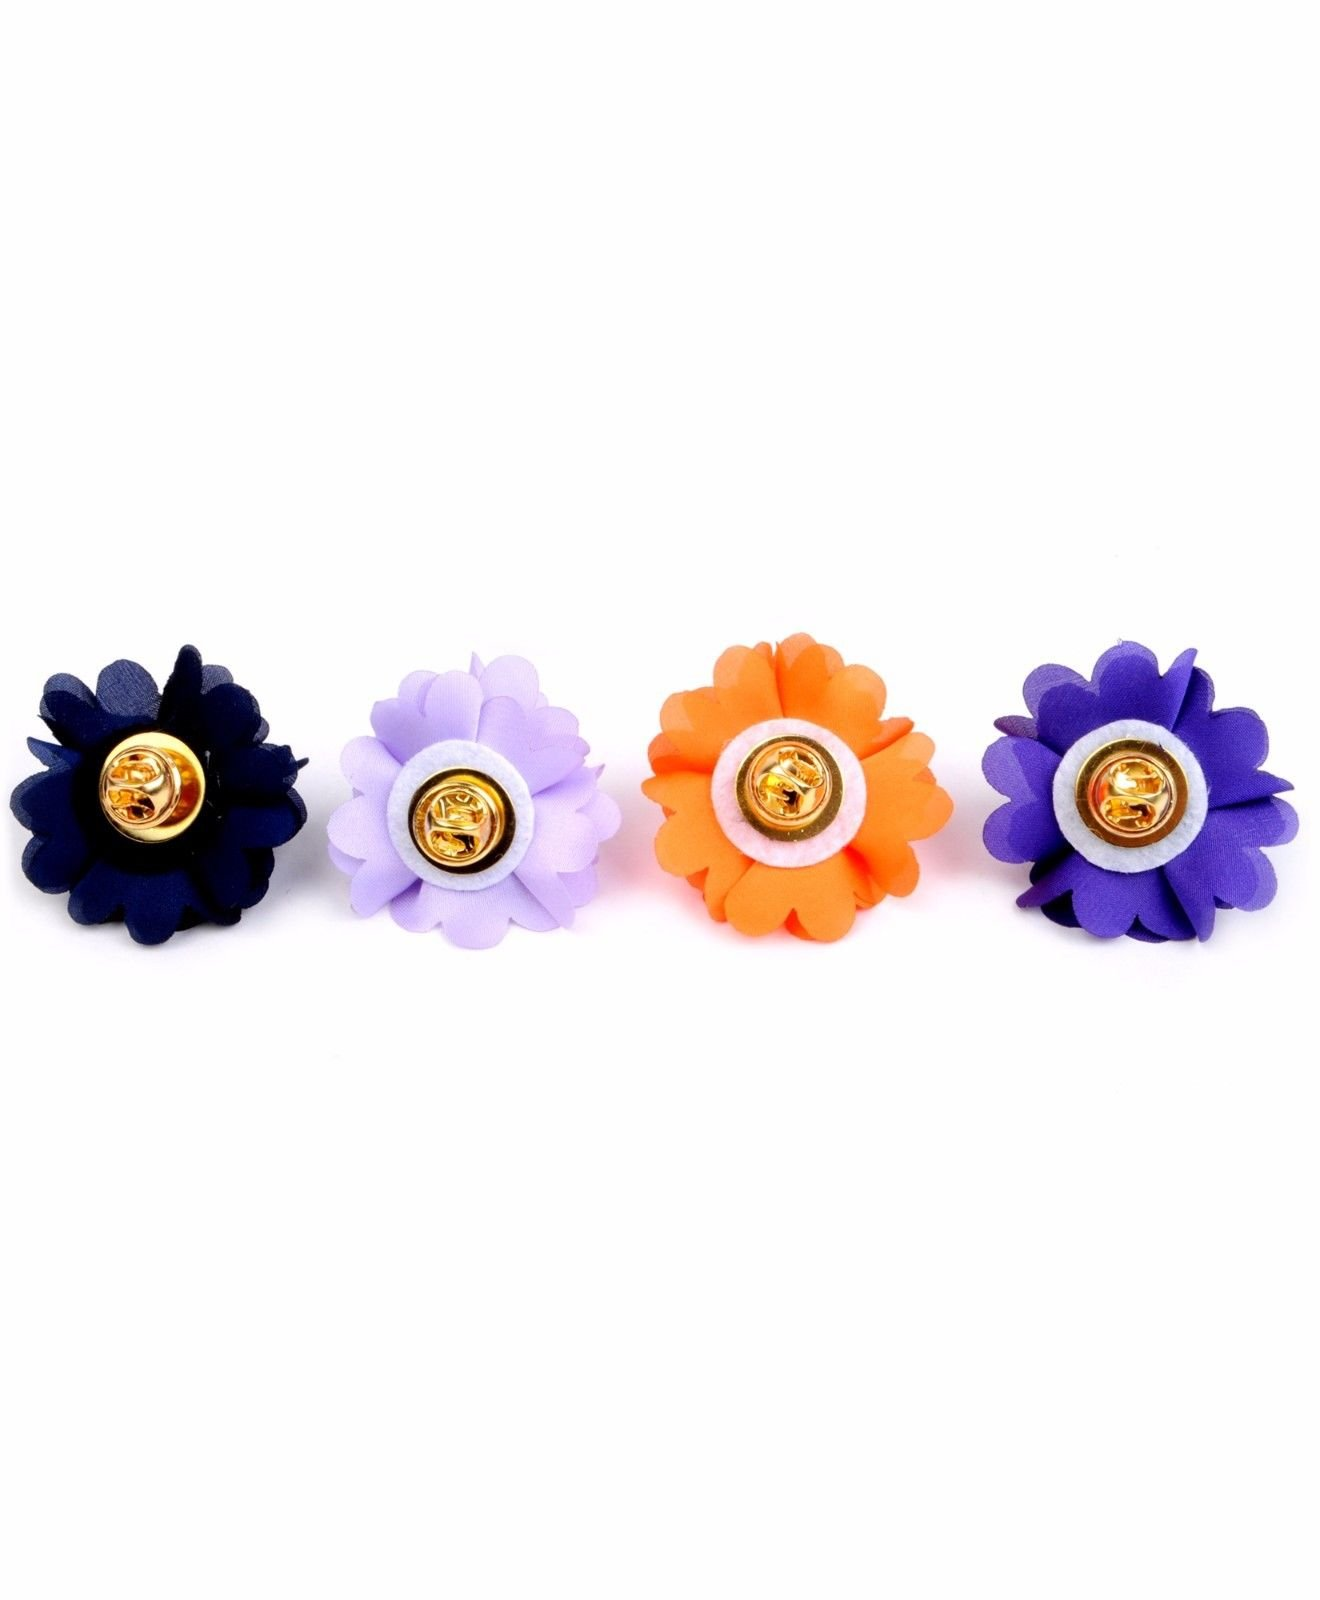 BG-Mini-Bouquet-Clutch-Back-Flower-Tuxedo-Suit-Lapel-Pins-Boutonniere-4-Pack-Set thumbnail 21